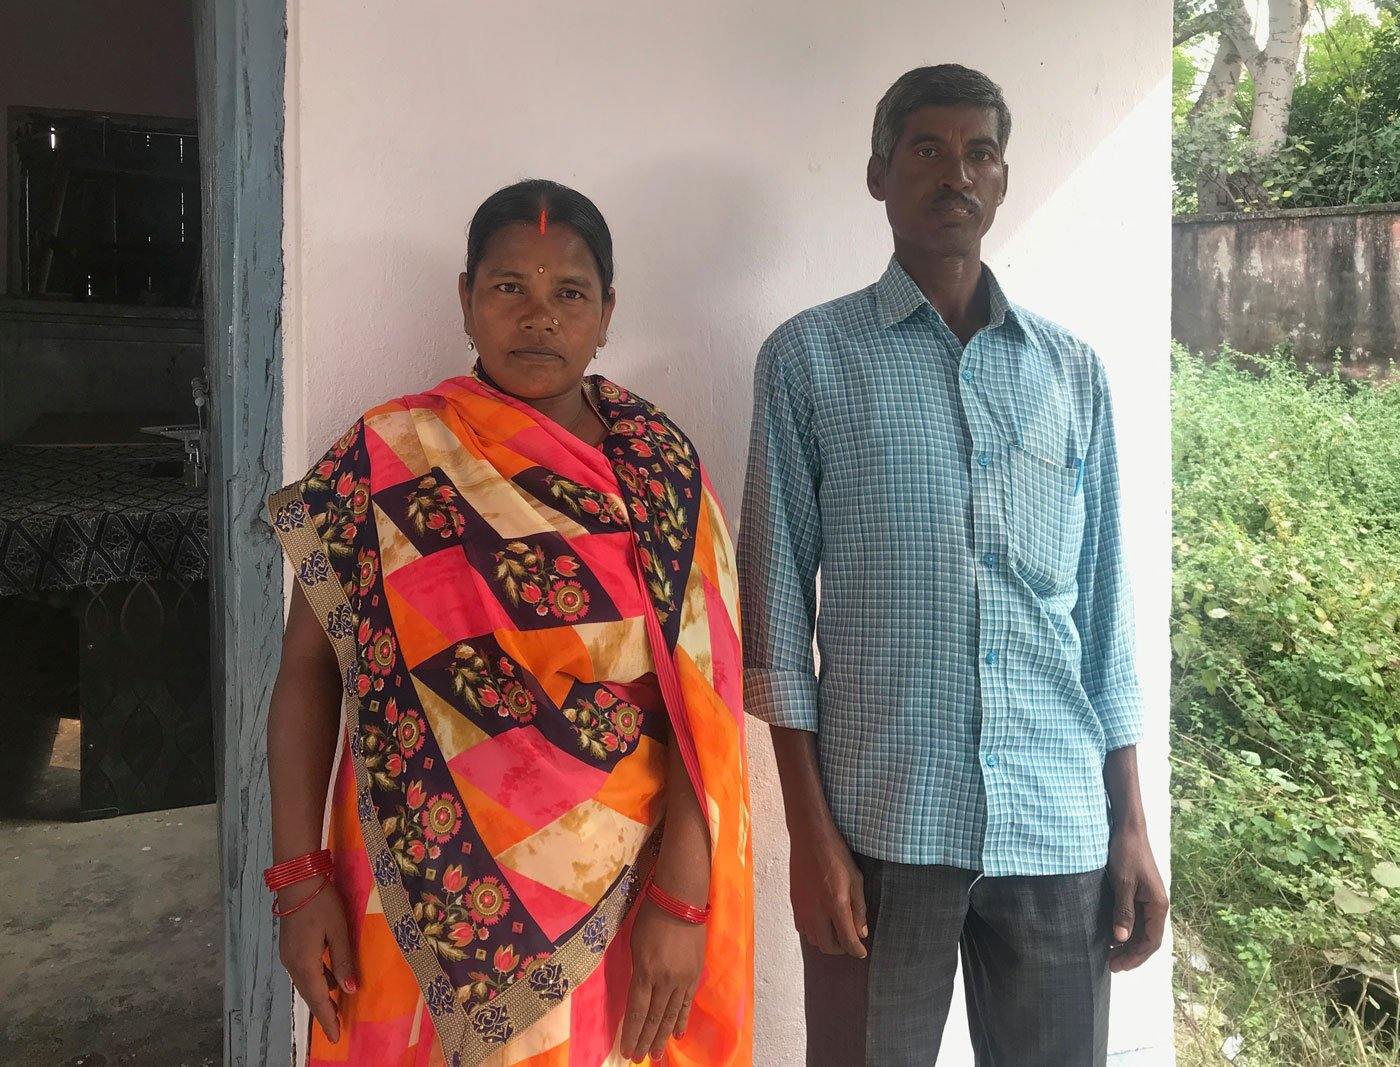 Vikas Mitra Malati Kumar and Nandkishore Manjhi: 'We work as a team. I talk to the women, he talks to their husbands', she says